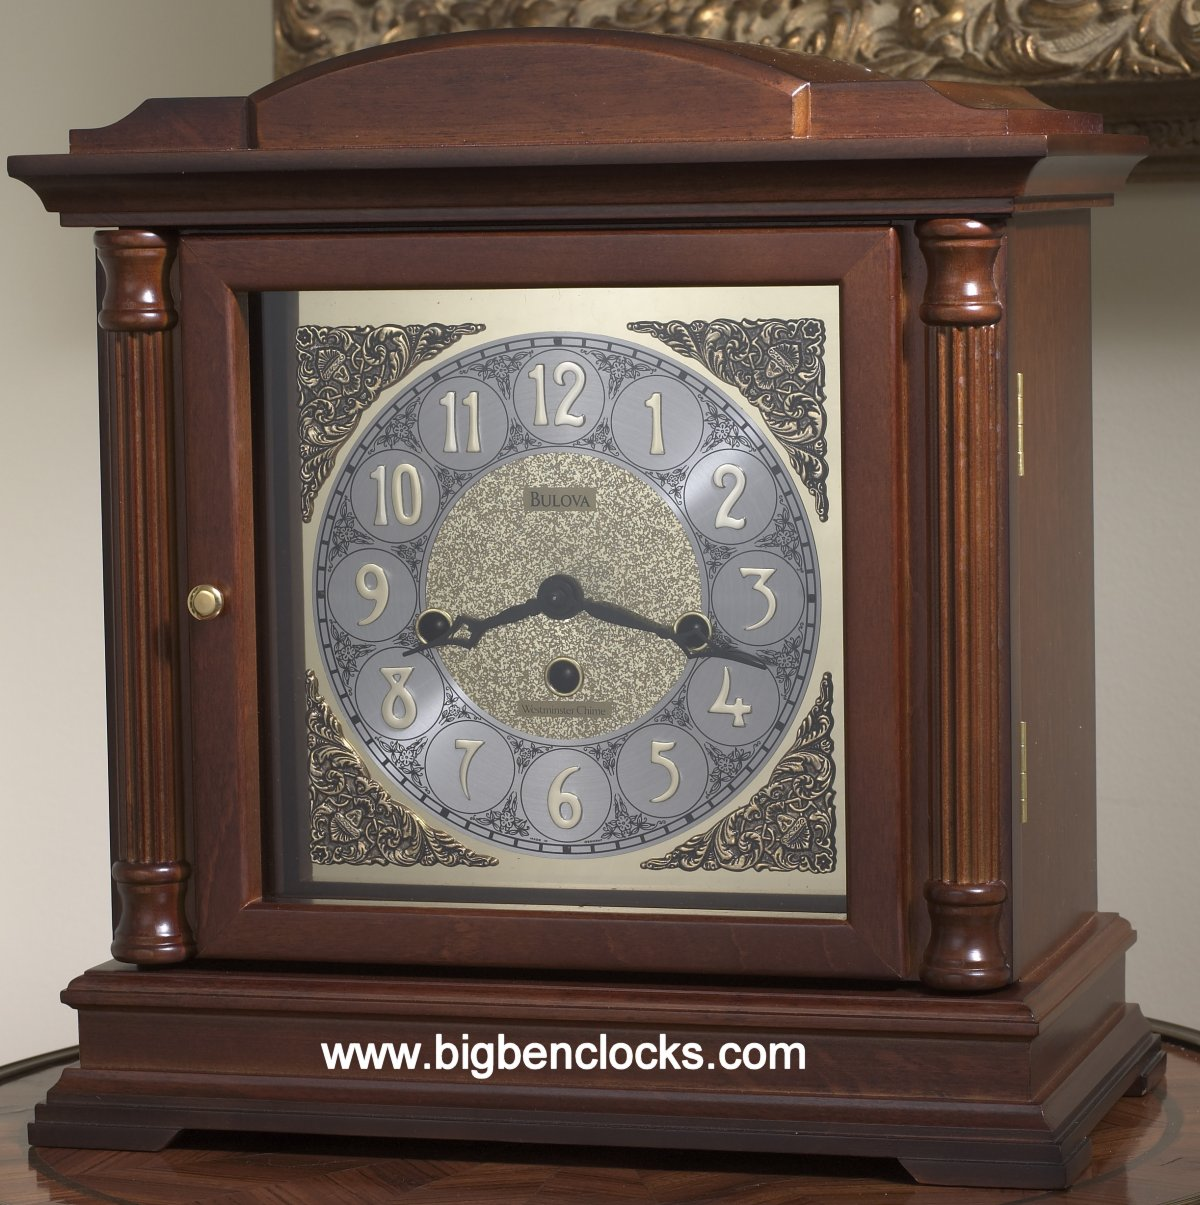 Large Silver Mantel Clock | Wood Mantel Clock | Bulova Mantel Clock